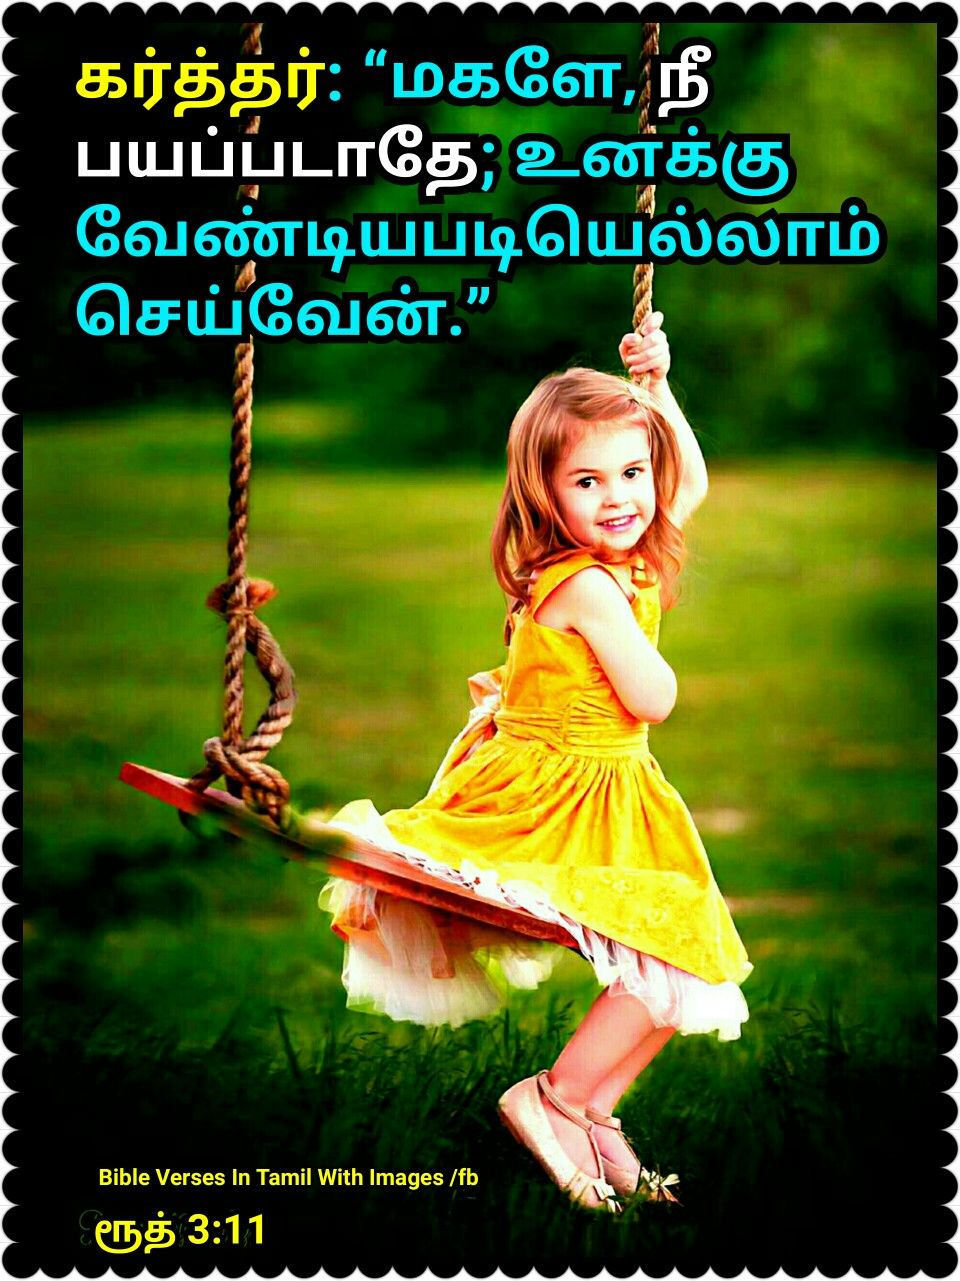 Bless in stress Blessed bible verse, Bible words, Tamil